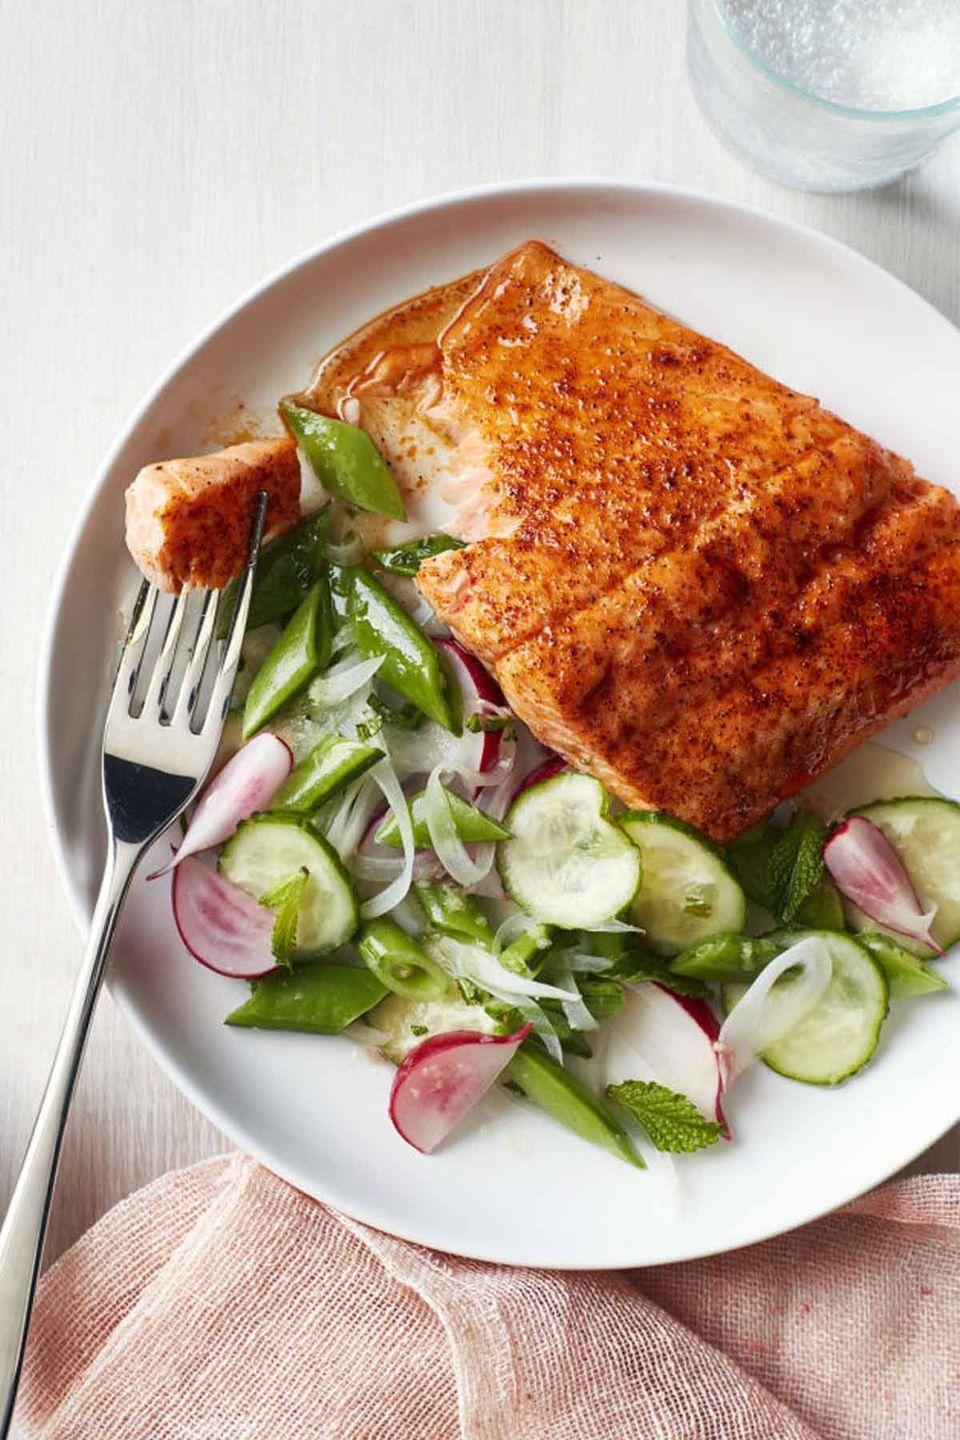 """<p>All health-minded moms will appreciate this light seafood dinner, which is paired with a refreshing side salad on Mother's Day. </p><p><a href=""""https://www.womansday.com/food-recipes/food-drinks/recipes/a58512/roasted-blackened-salmon-snap-pea-salad-recipe/"""" rel=""""nofollow noopener"""" target=""""_blank"""" data-ylk=""""slk:Get the recipe for Roasted Blackened Salmon with Snap Pea Salad."""" class=""""link rapid-noclick-resp""""><em>Get the recipe for Roasted Blackened Salmon with Snap Pea Salad.</em></a> </p>"""